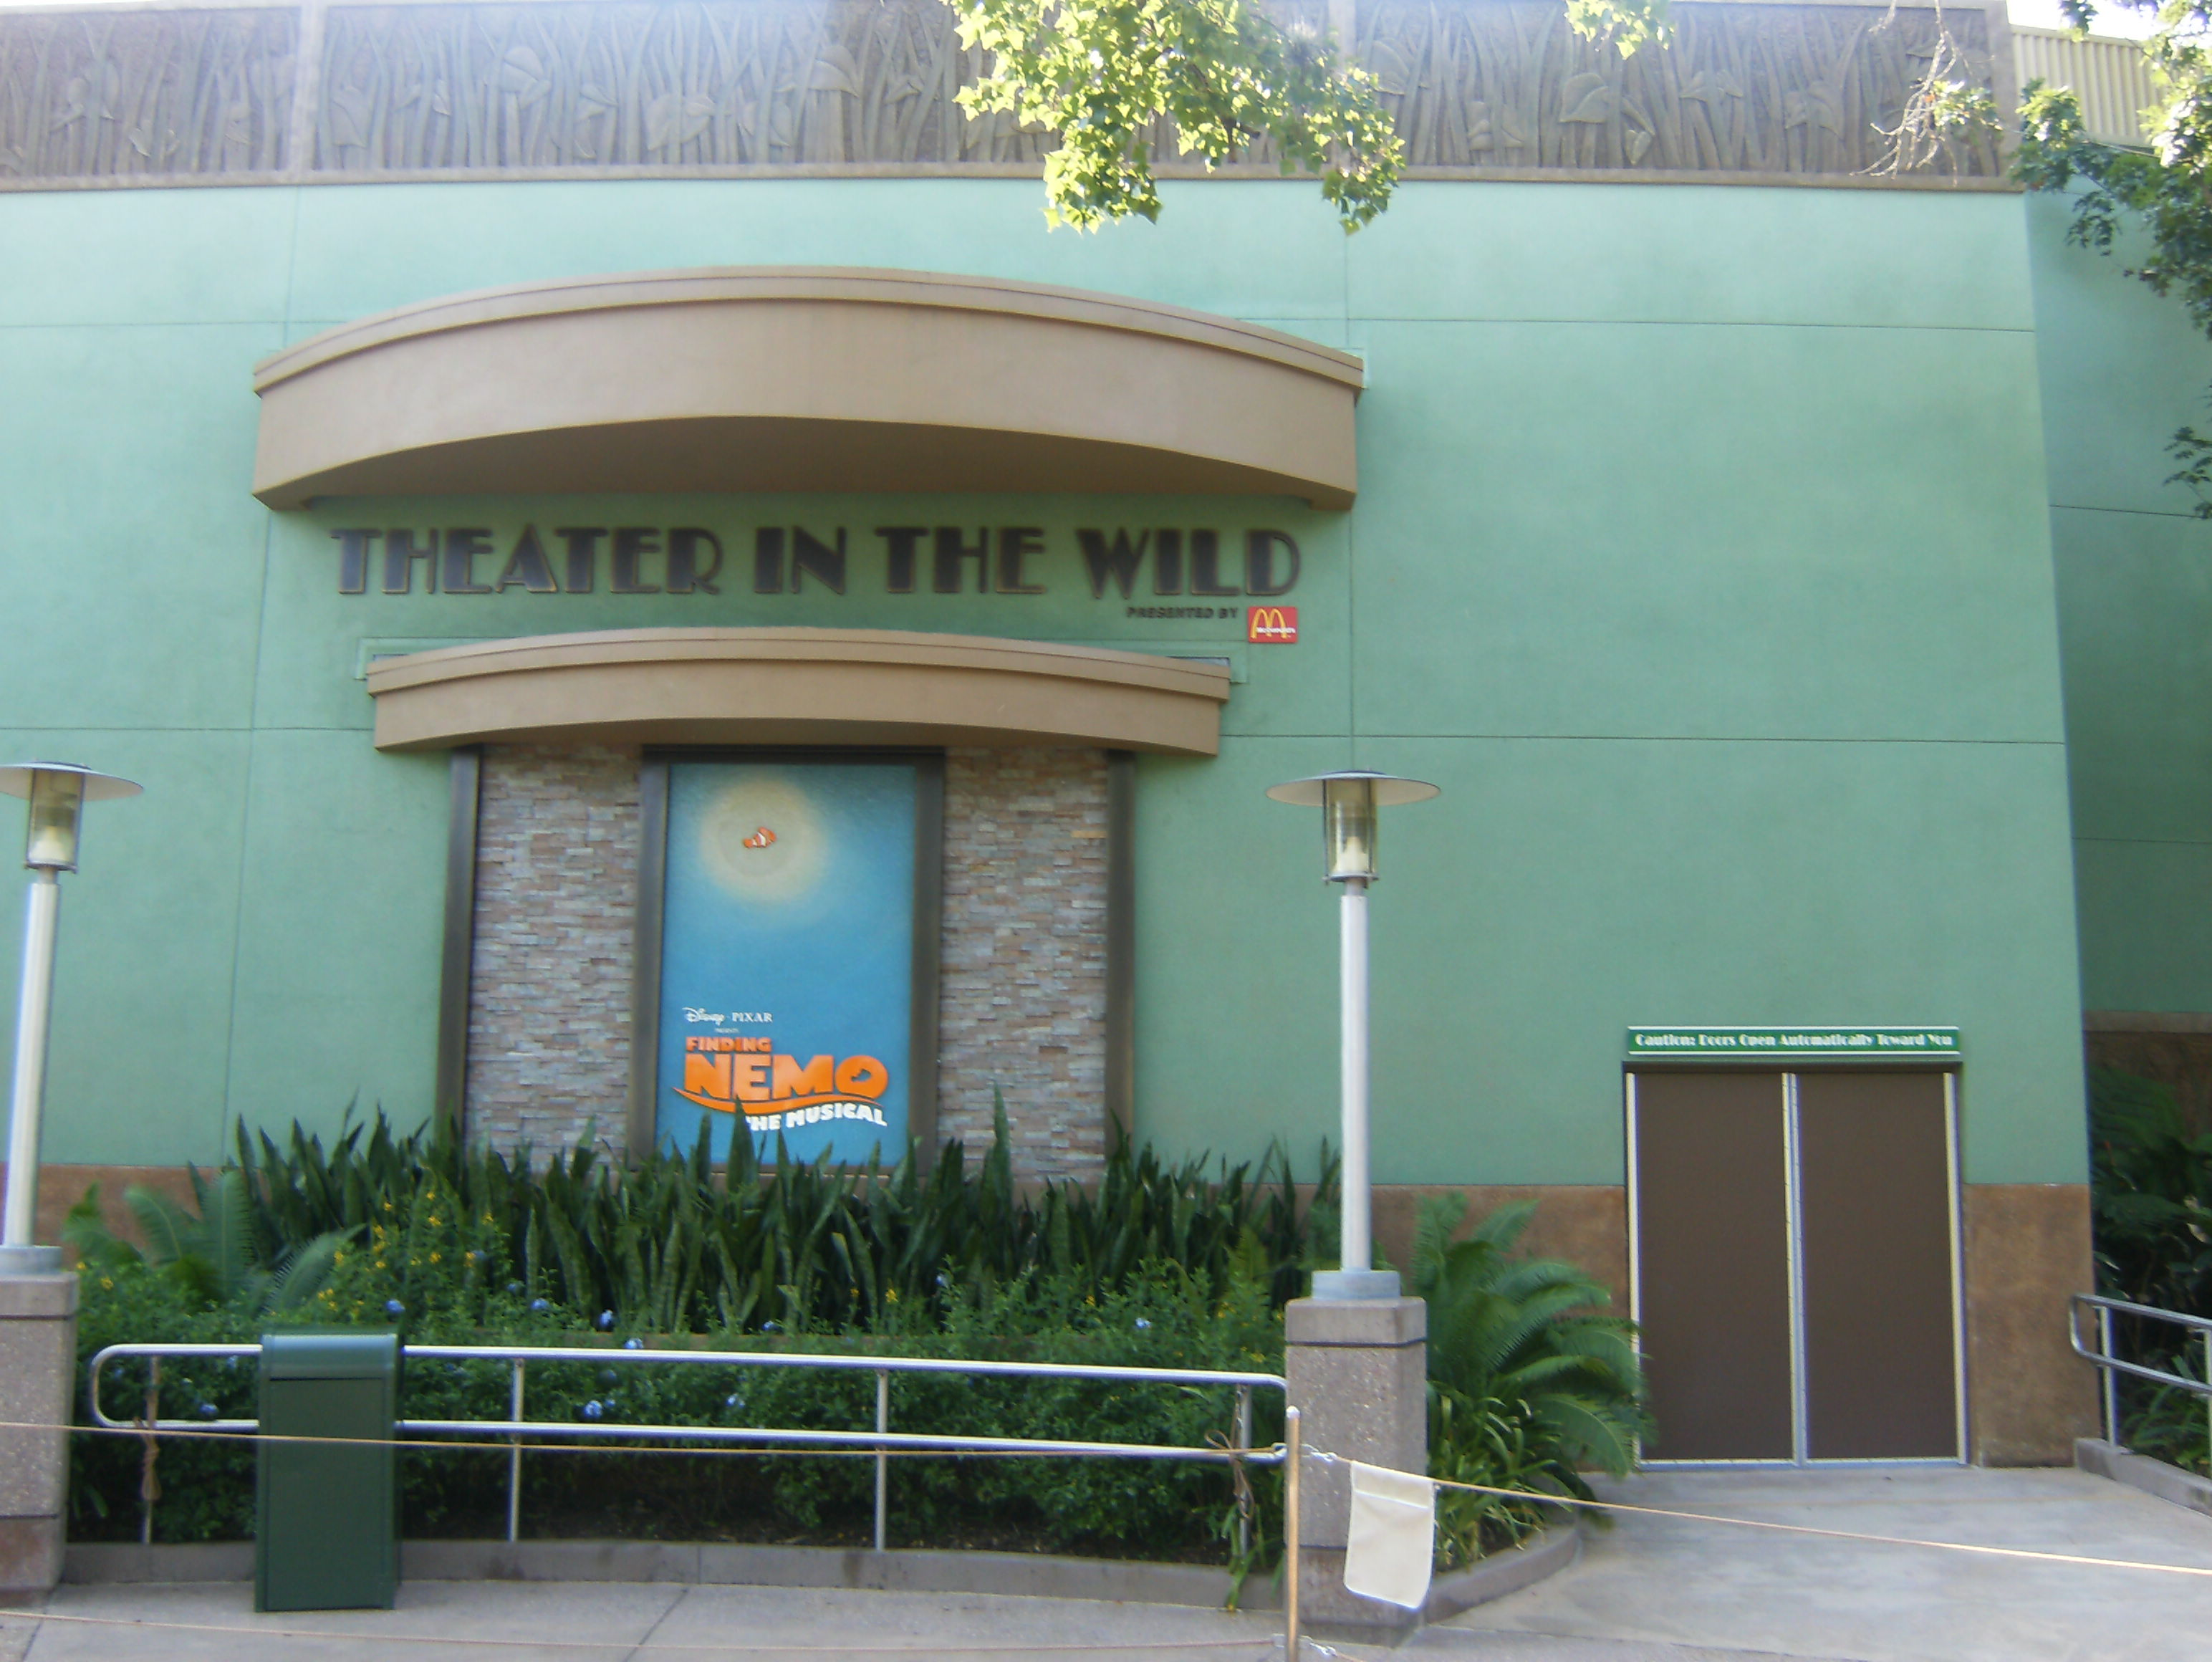 finding nemo movie review writework the entrance to the theater in the wild in disney s animal kingdom florida the